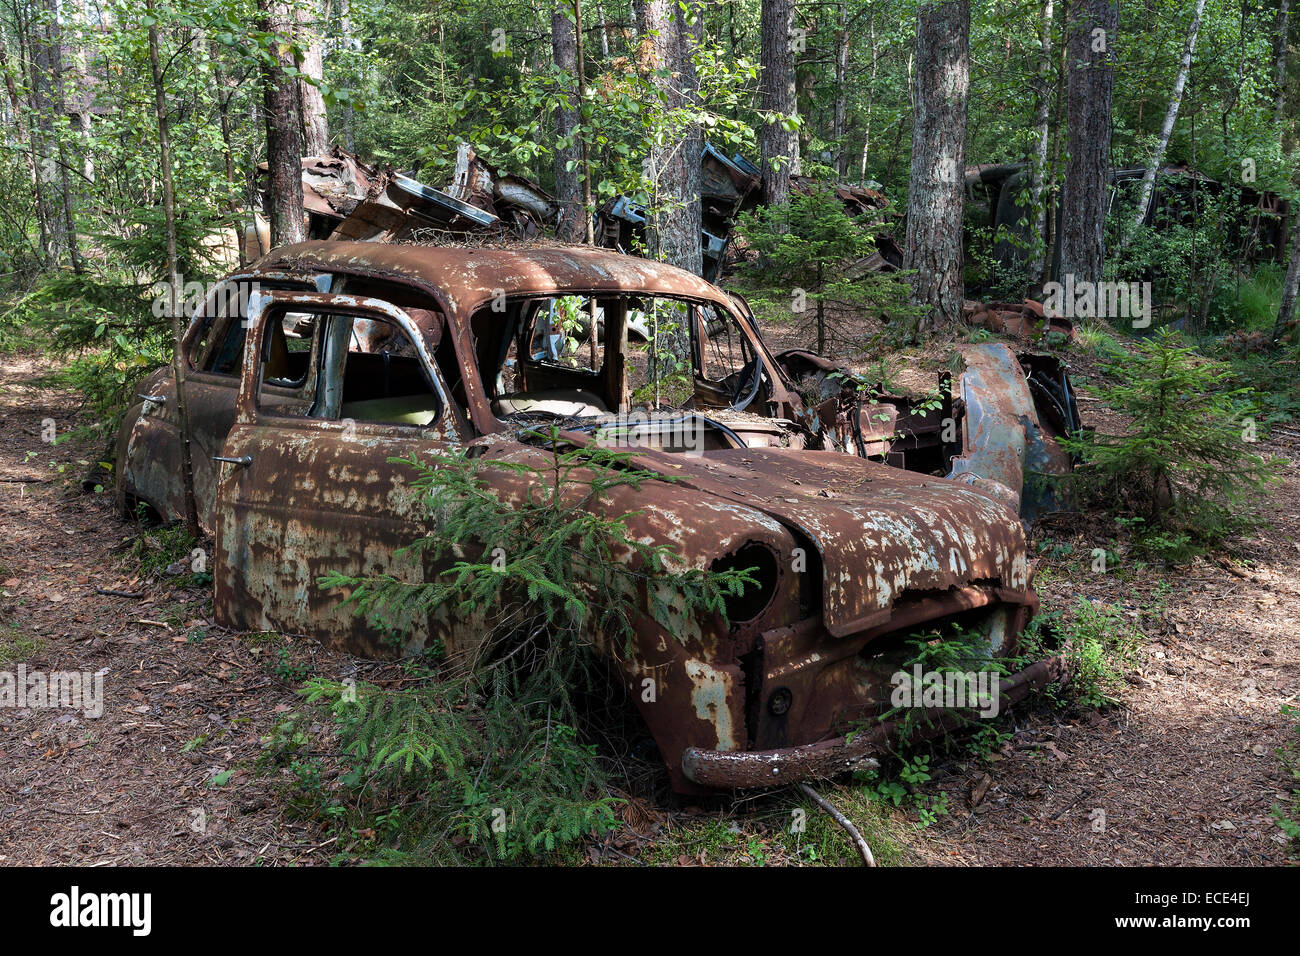 Auto graveyard in the forest, junk cars, Kyrkö Mosse, near Ryd ...